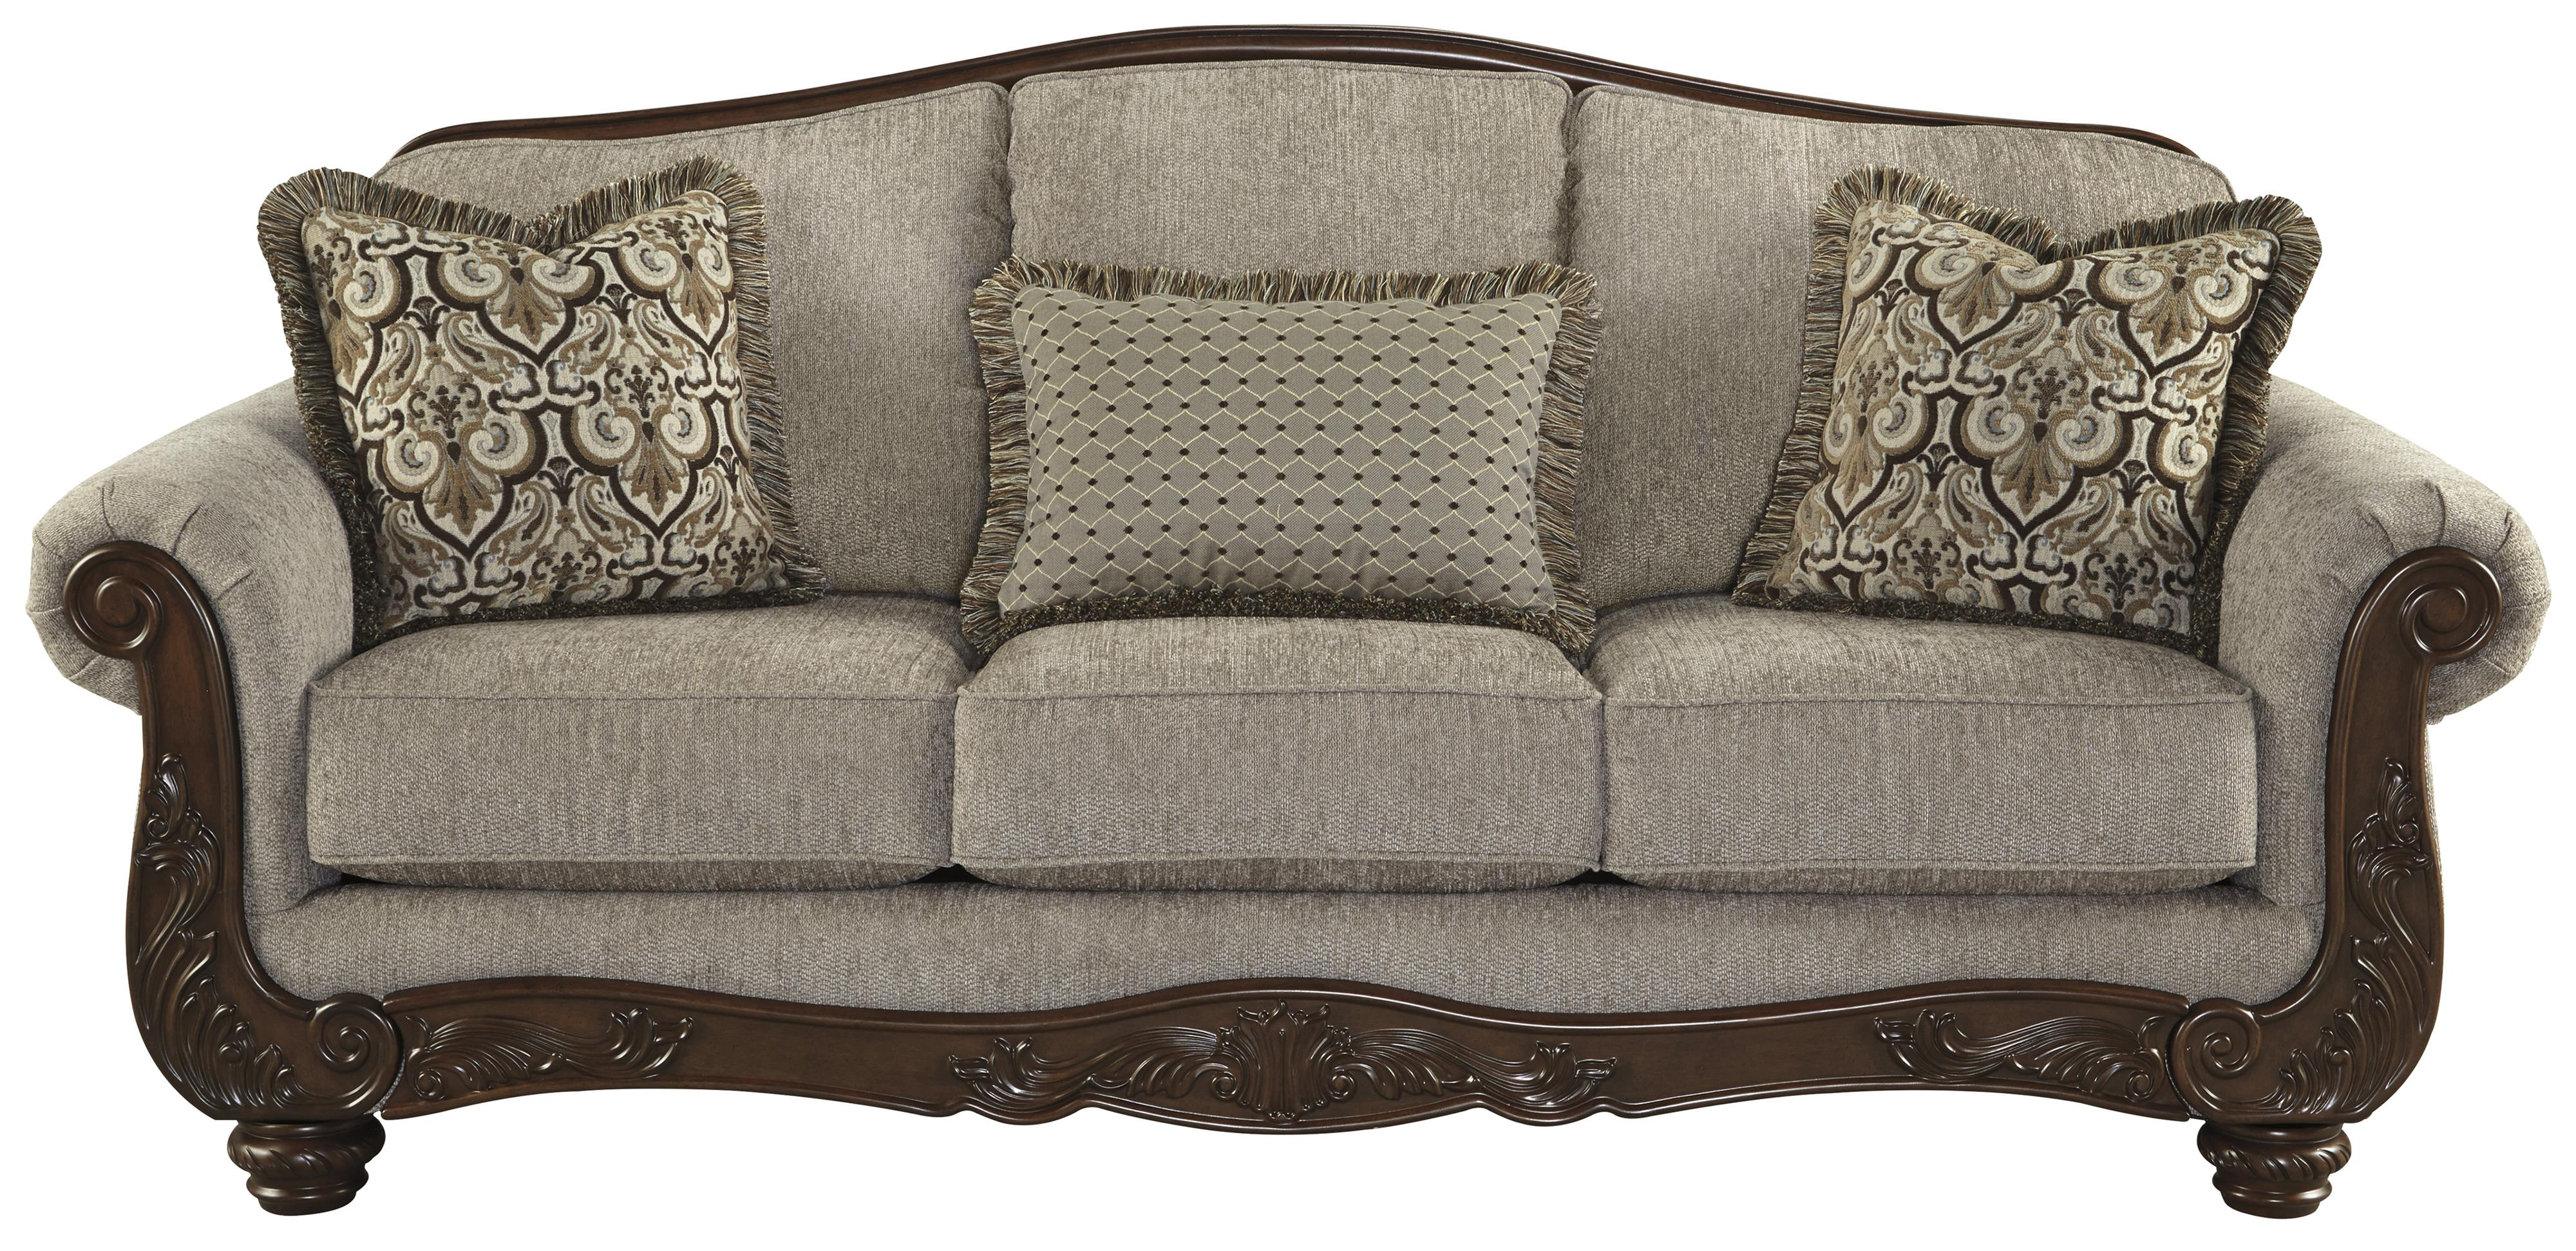 Signature Design By Ashley Cecilyn Traditional Sofa With Showood Trim Camel Back Olinde 39 S